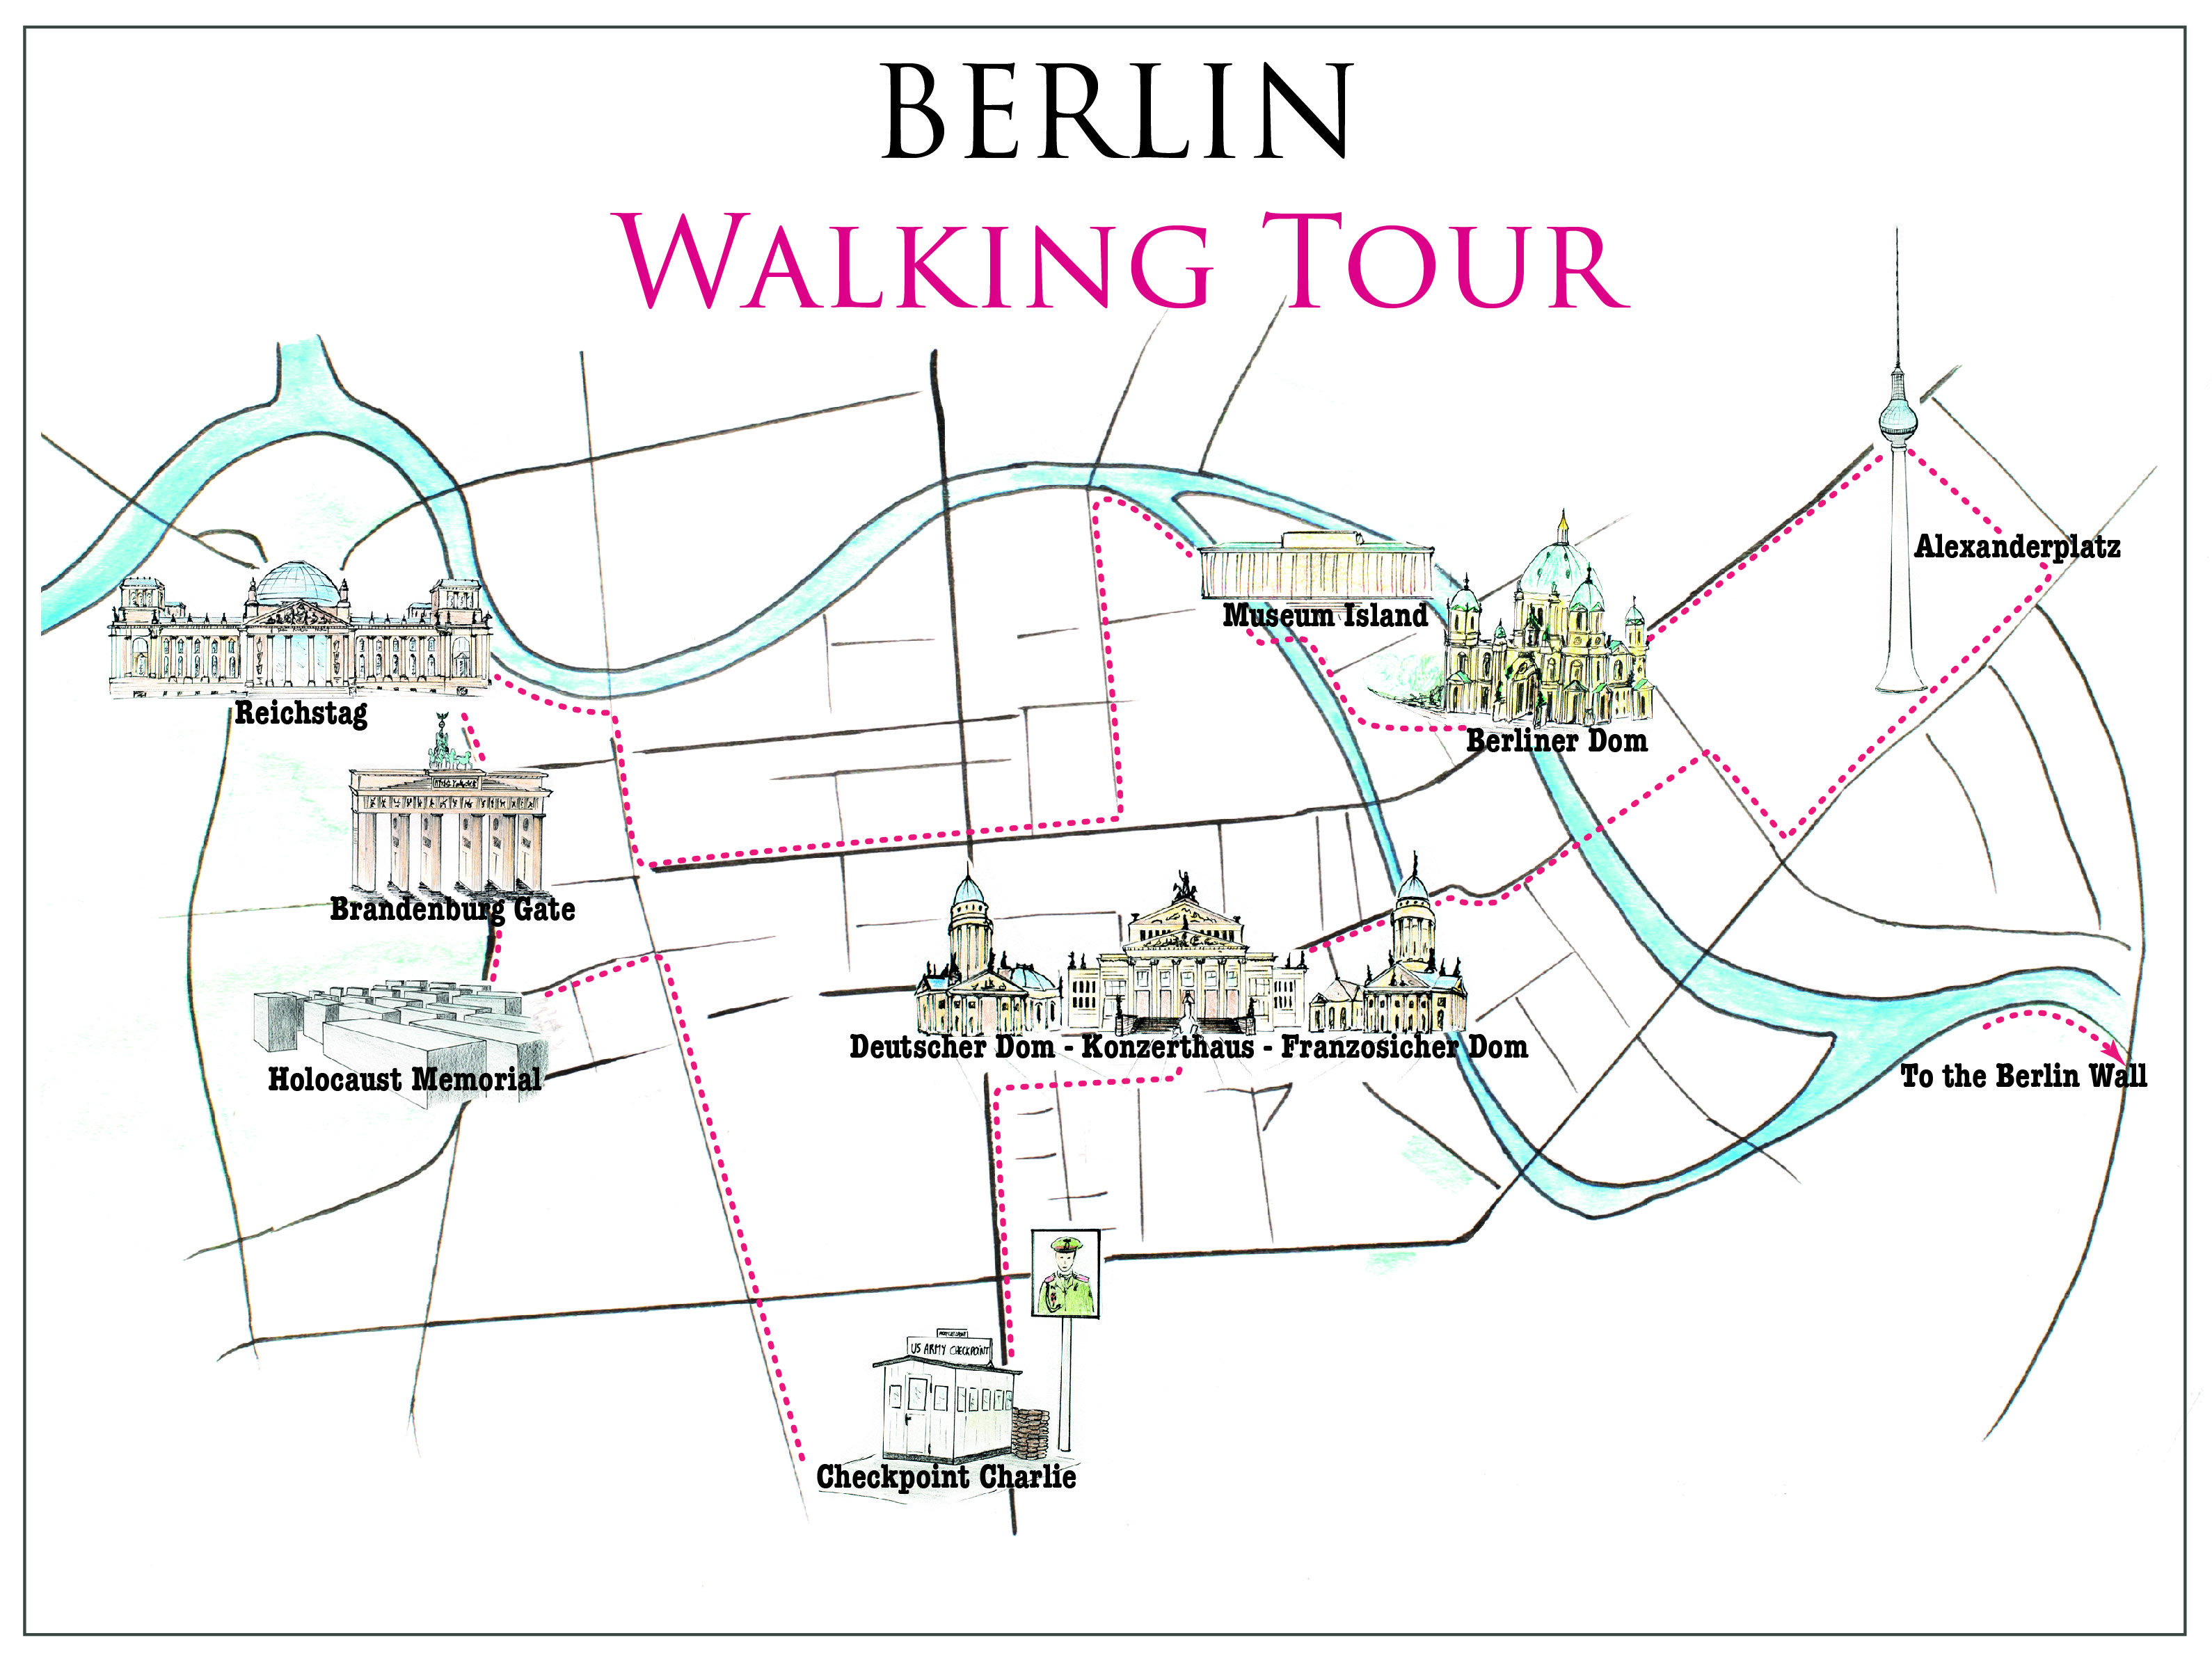 Berlin Walking Tour Map